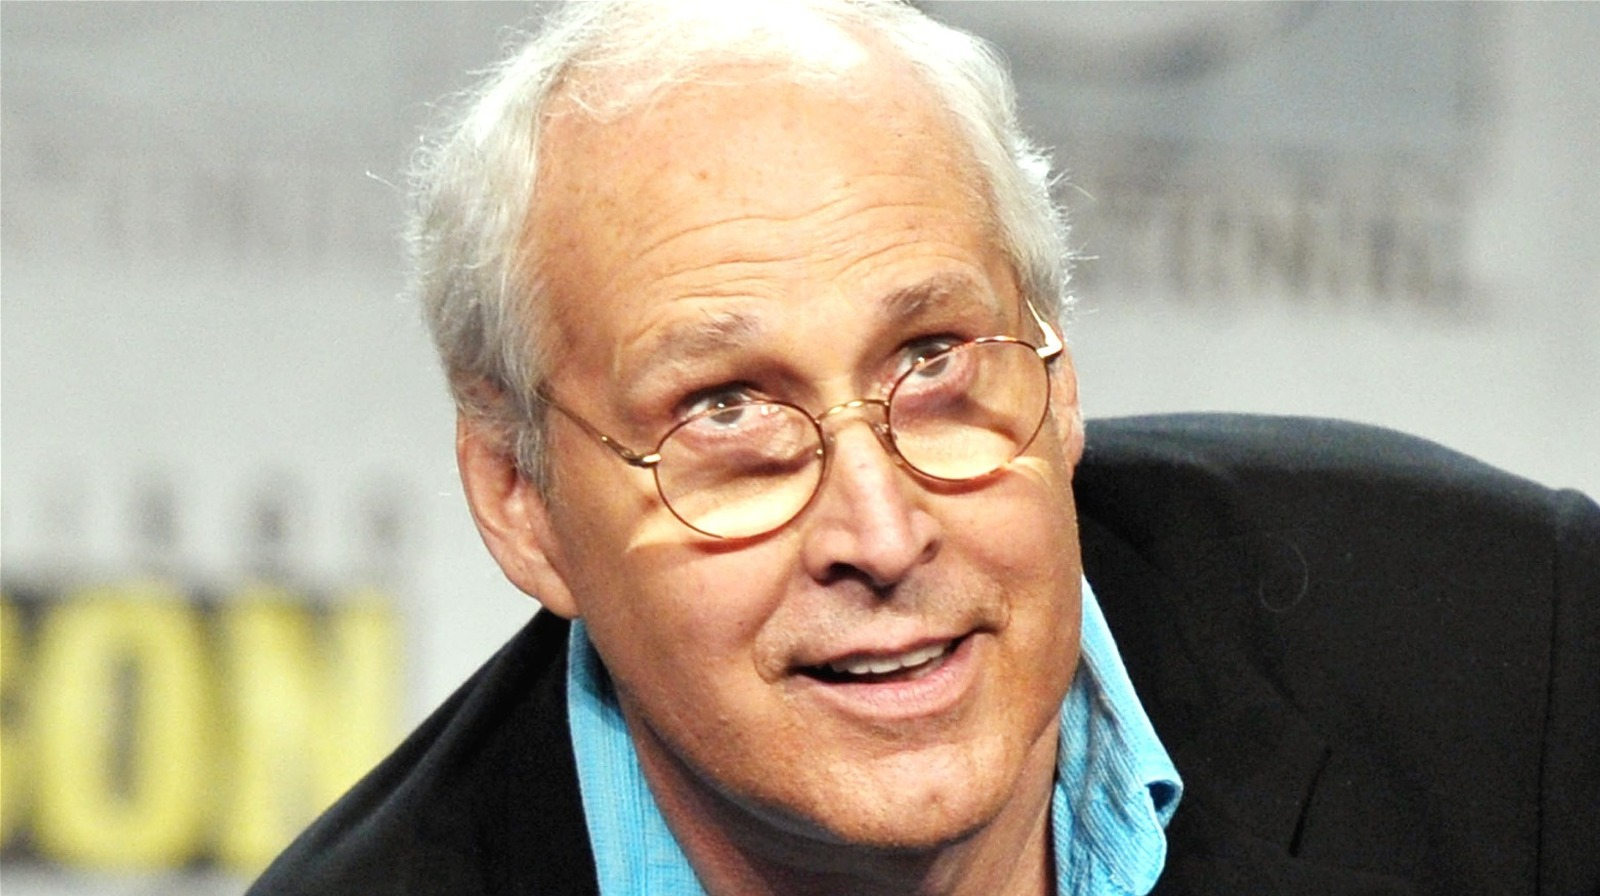 The Real Reason Why Chevy Chase Only Made Two Fletch Movies